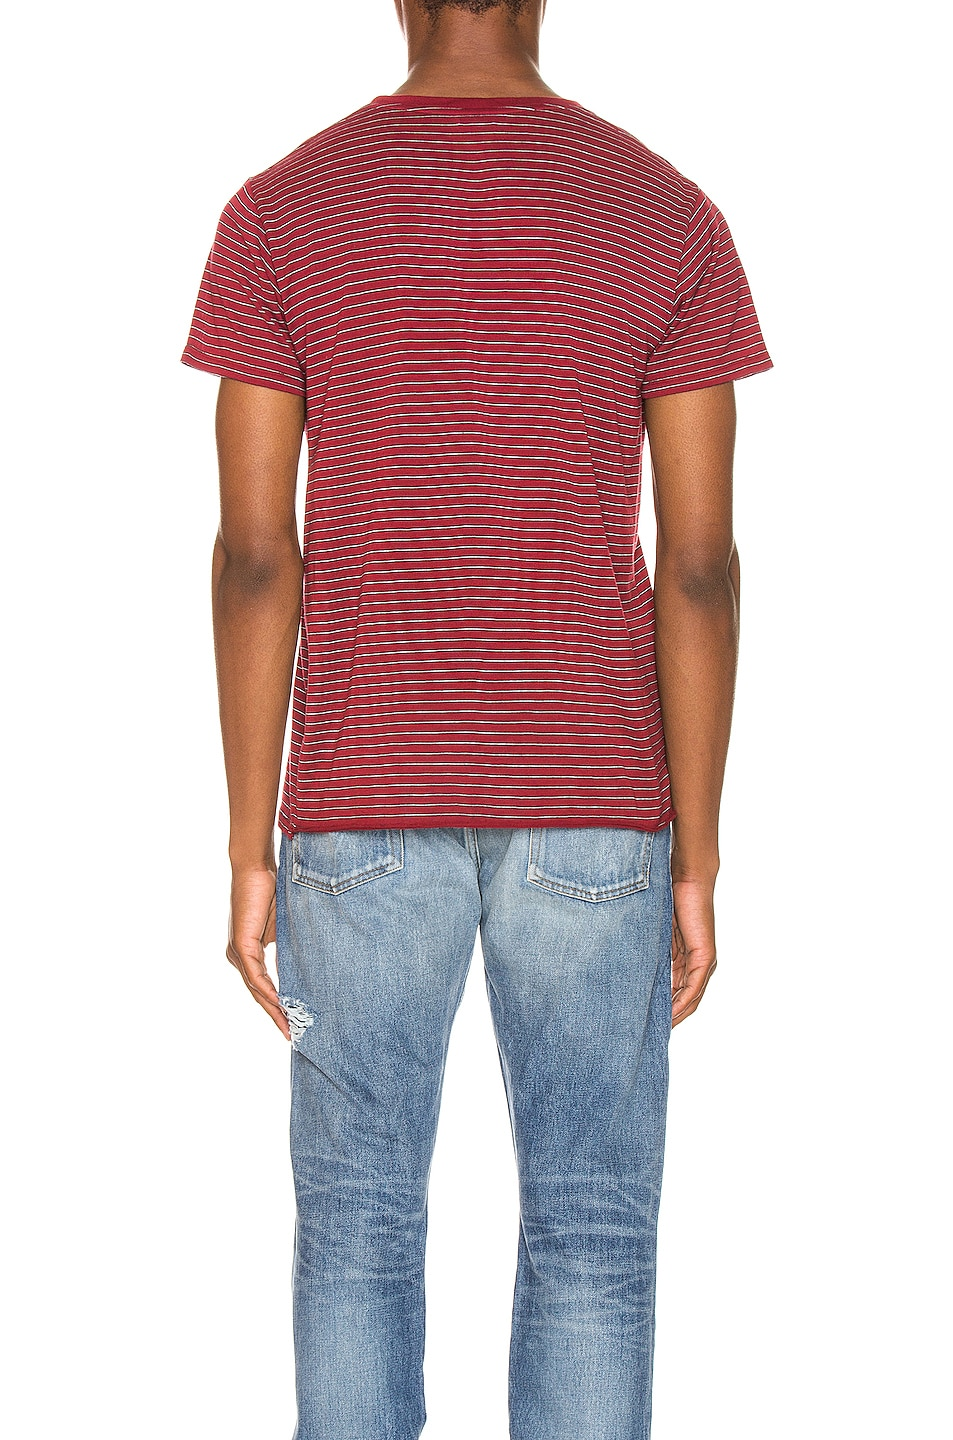 Image 3 of Saint Laurent Stripe Logo Tee in Bordeaux & Black